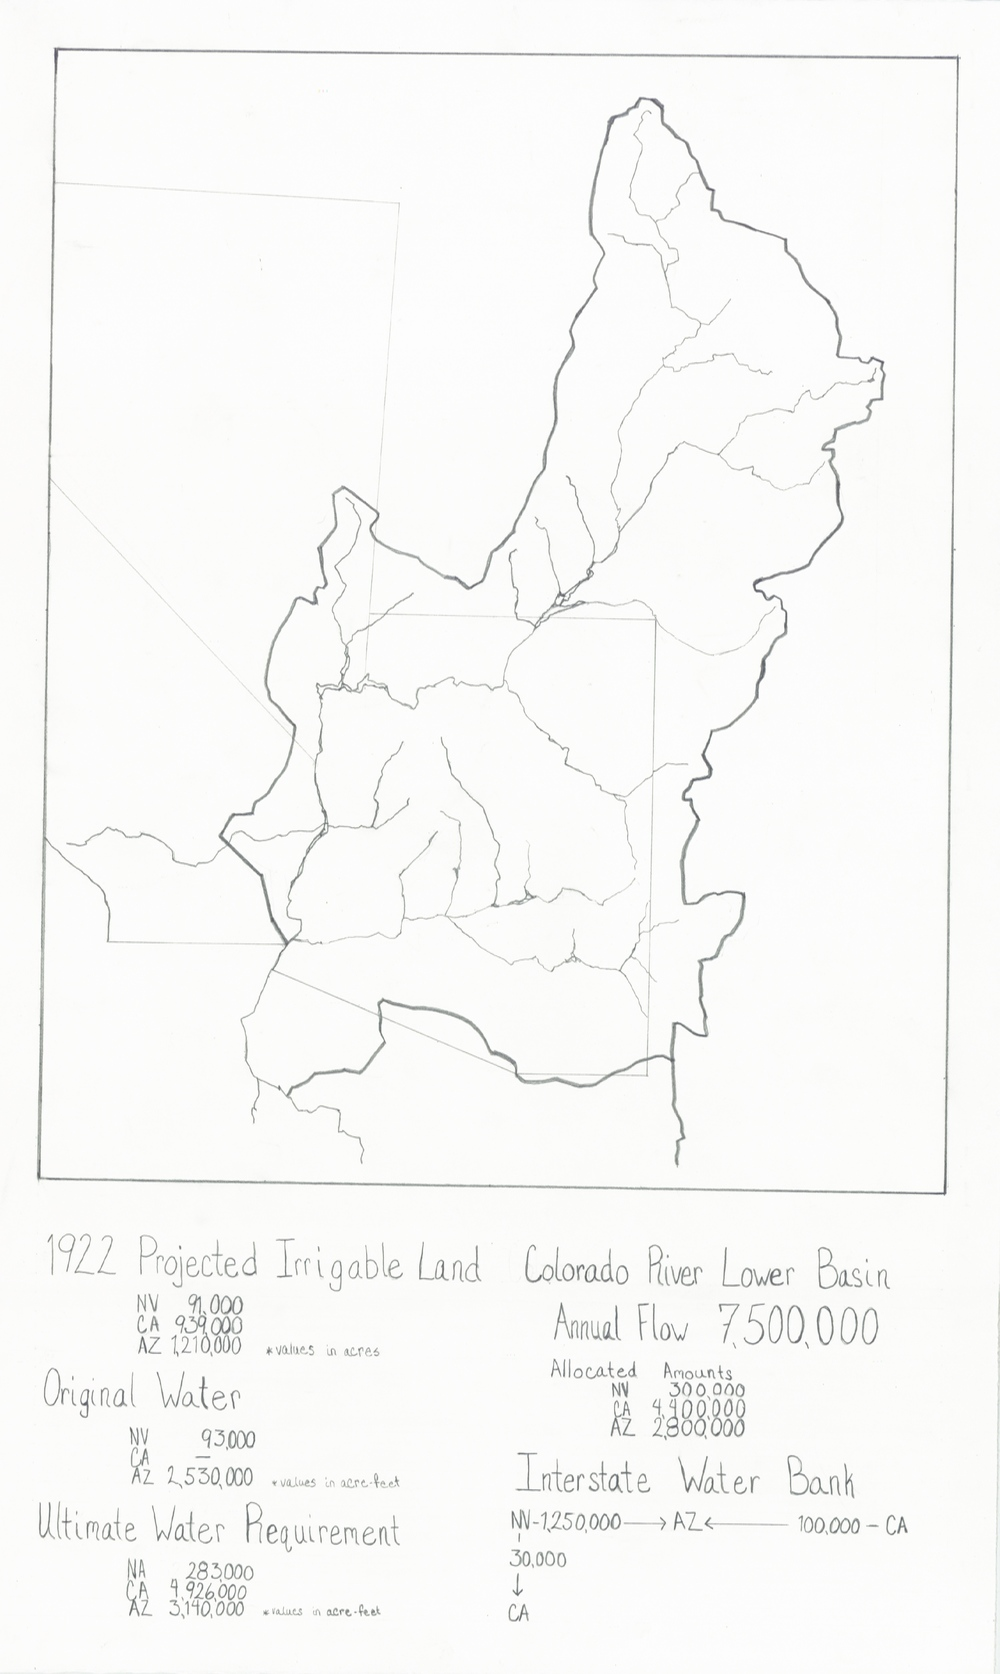 Colorado River Basin Map.jpg